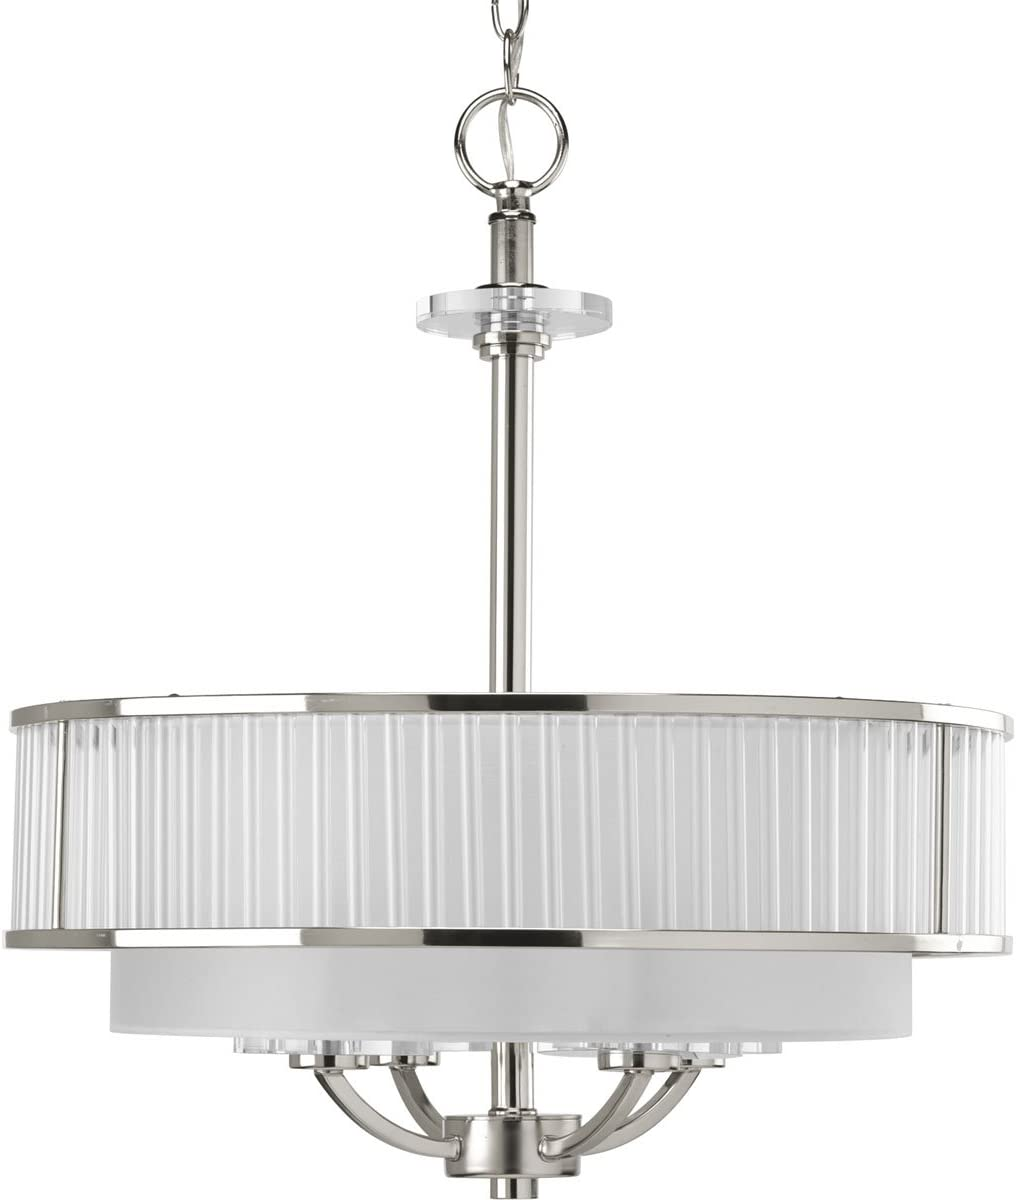 Progress Lighting 943881104 4 Light Pendant Features Clear Rods that Adorn a Chiffon Shade